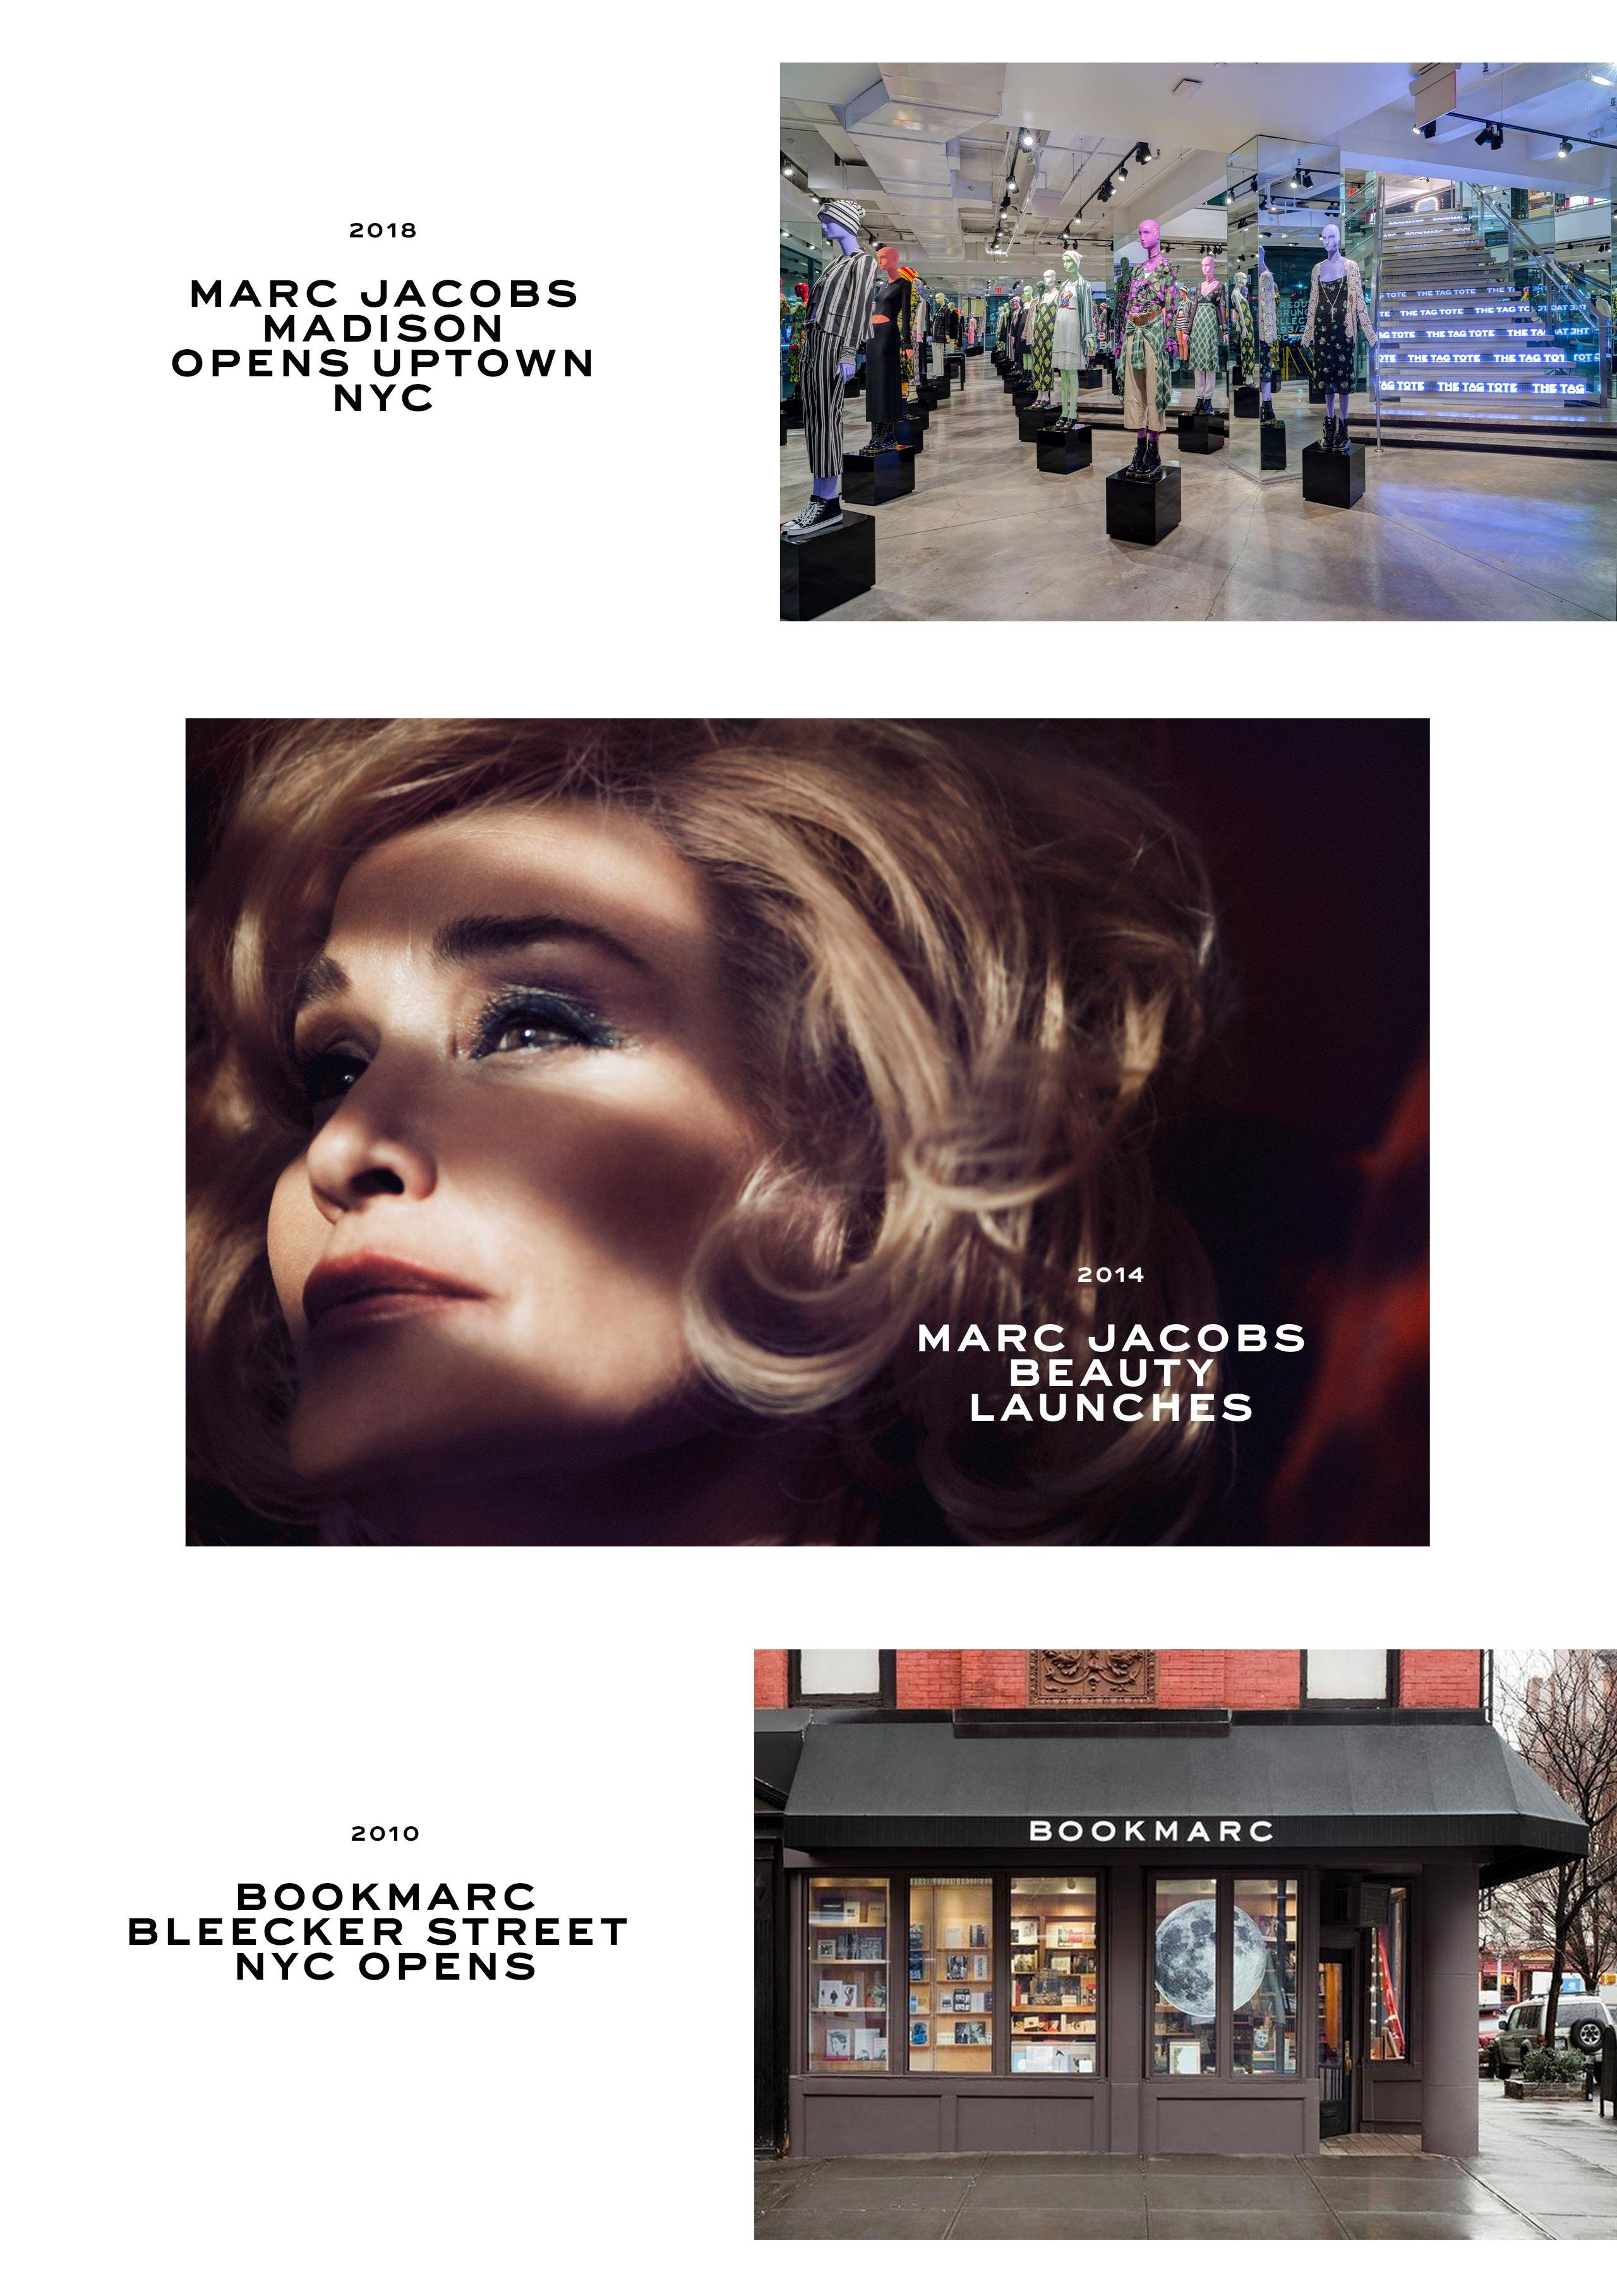 2018: Marc Jacobs Madison opens uptown NYC. 2014: Marc Jacobs Beauty launches. 2010: Bookmarc Bleecker Street NYC opens.